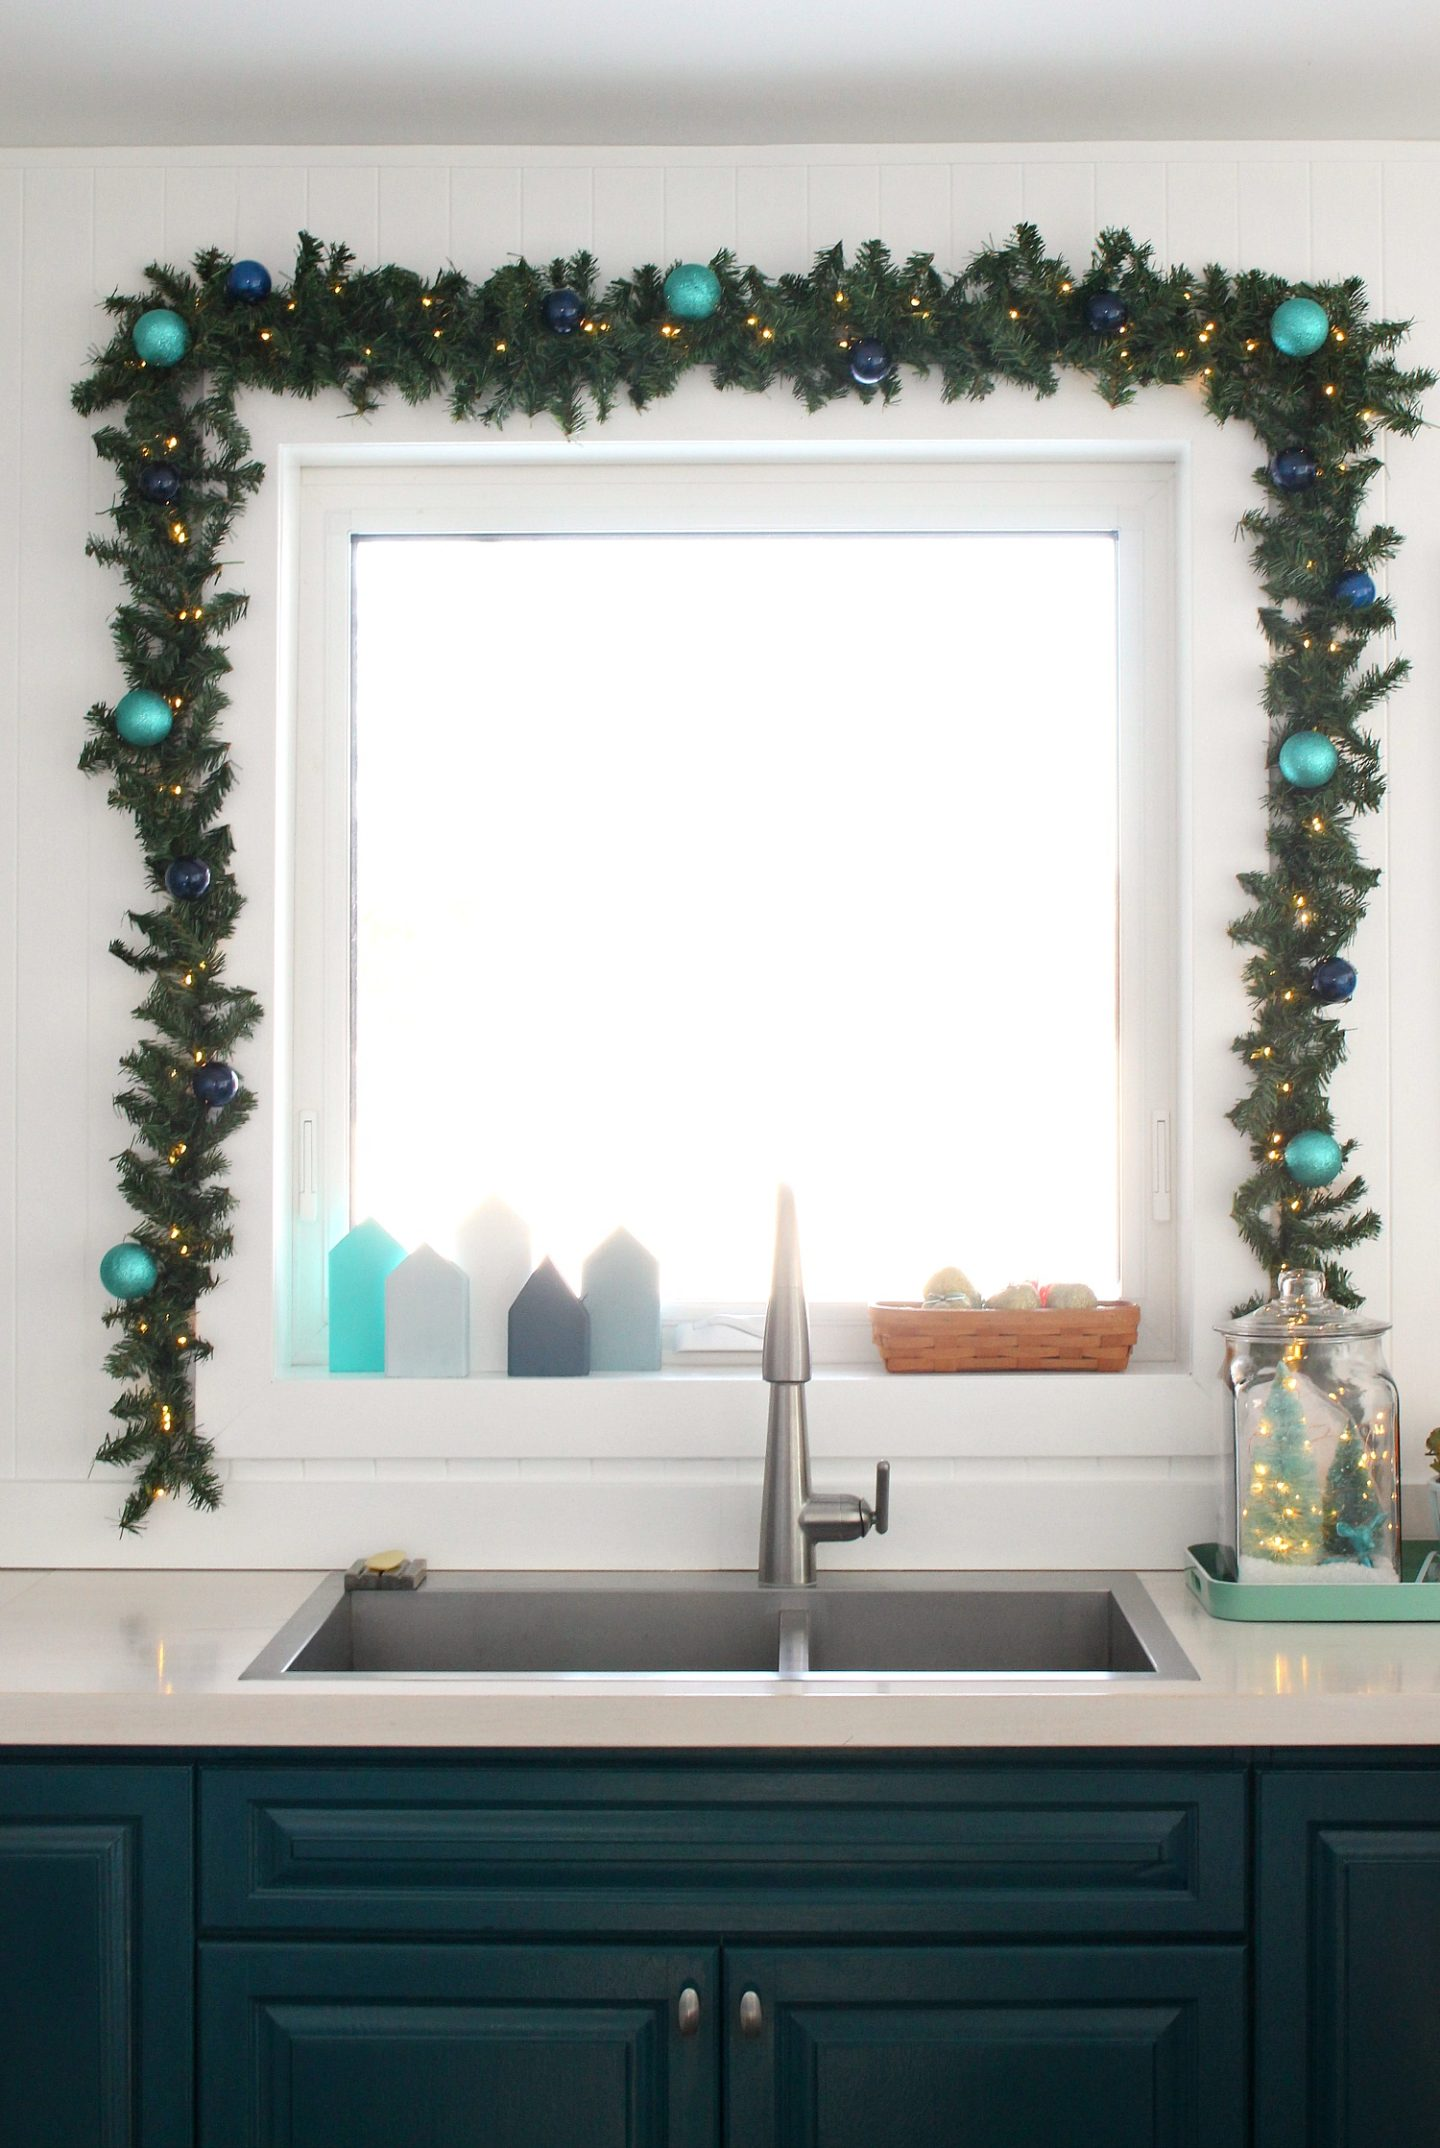 How to Hang Garland Around a Window